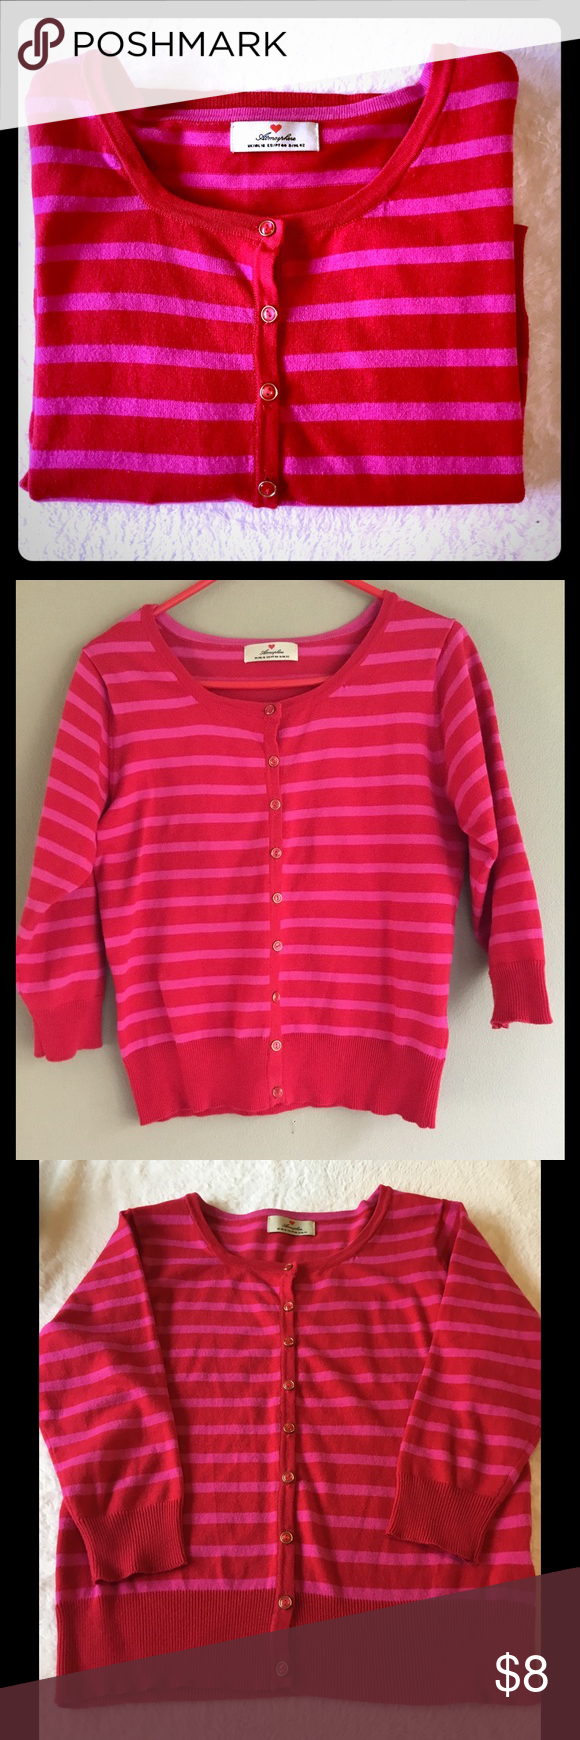 Red and pink cardigan sweater 14 | Pink cardigan sweater, Pink ...